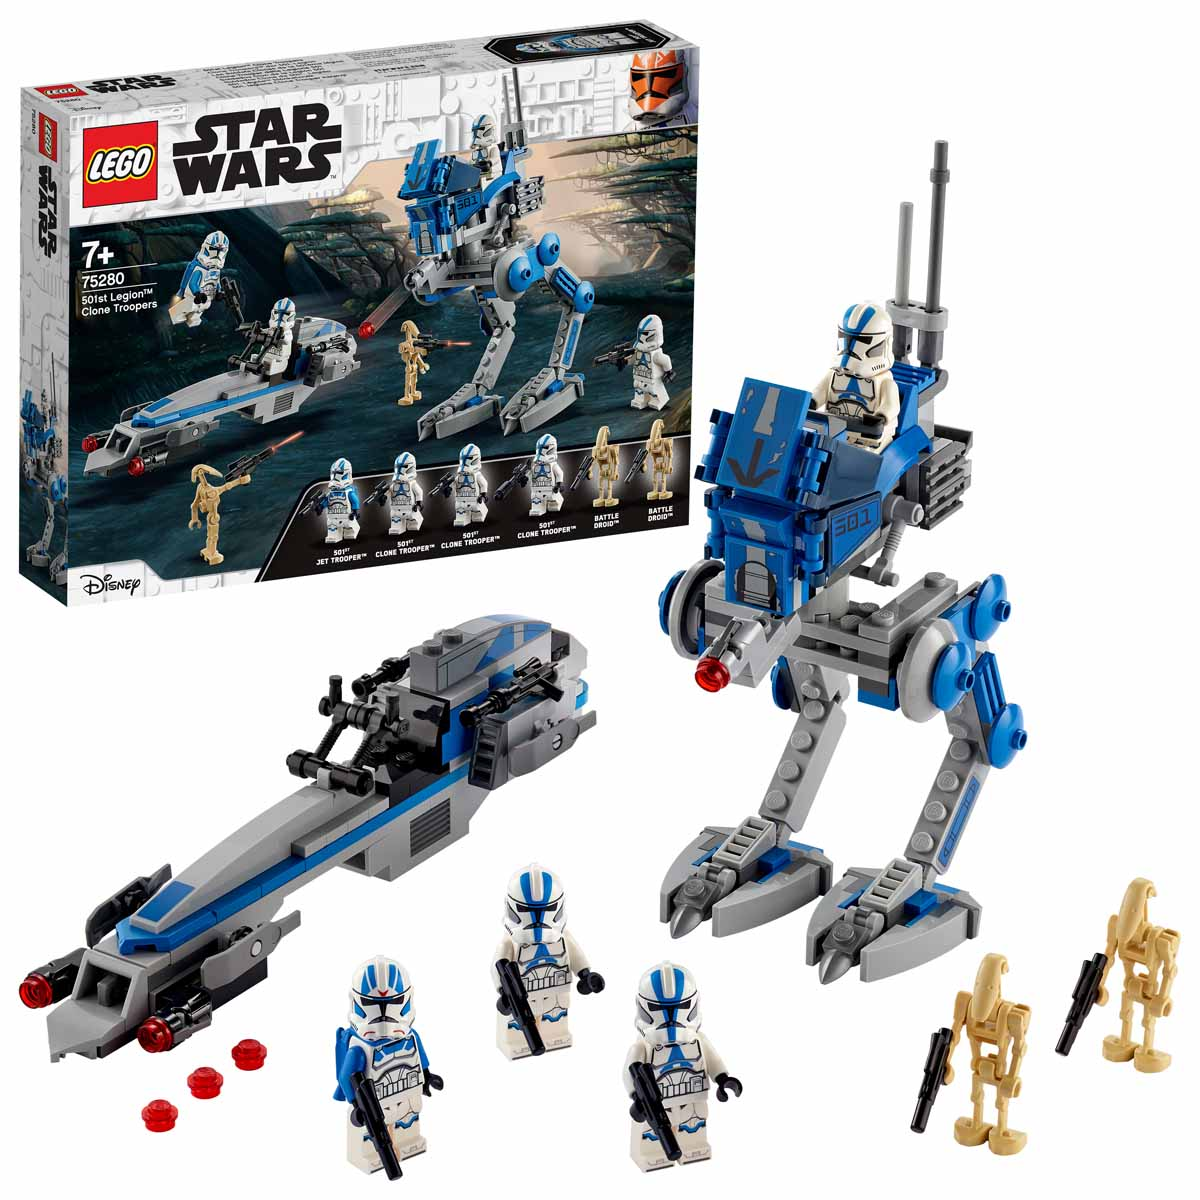 lego-star-wars-75280-501st-legion-clone-troopers